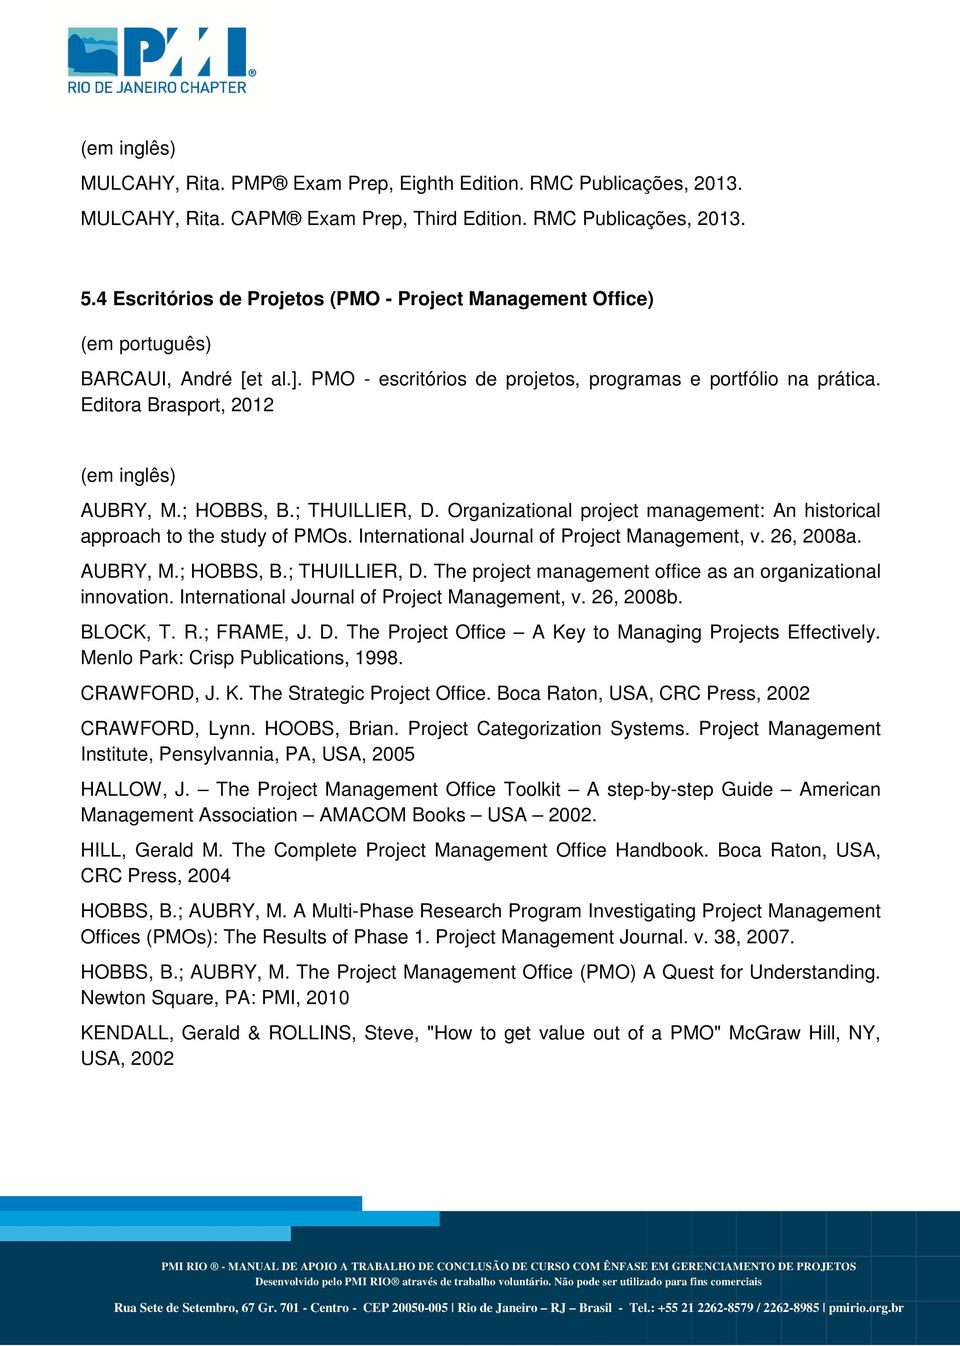 Editora Brasport, 2012 (em inglês) AUBRY, M.; HOBBS, B.; THUILLIER, D. Organizational project management: An historical approach to the study of PMOs. International Journal of Project Management, v.